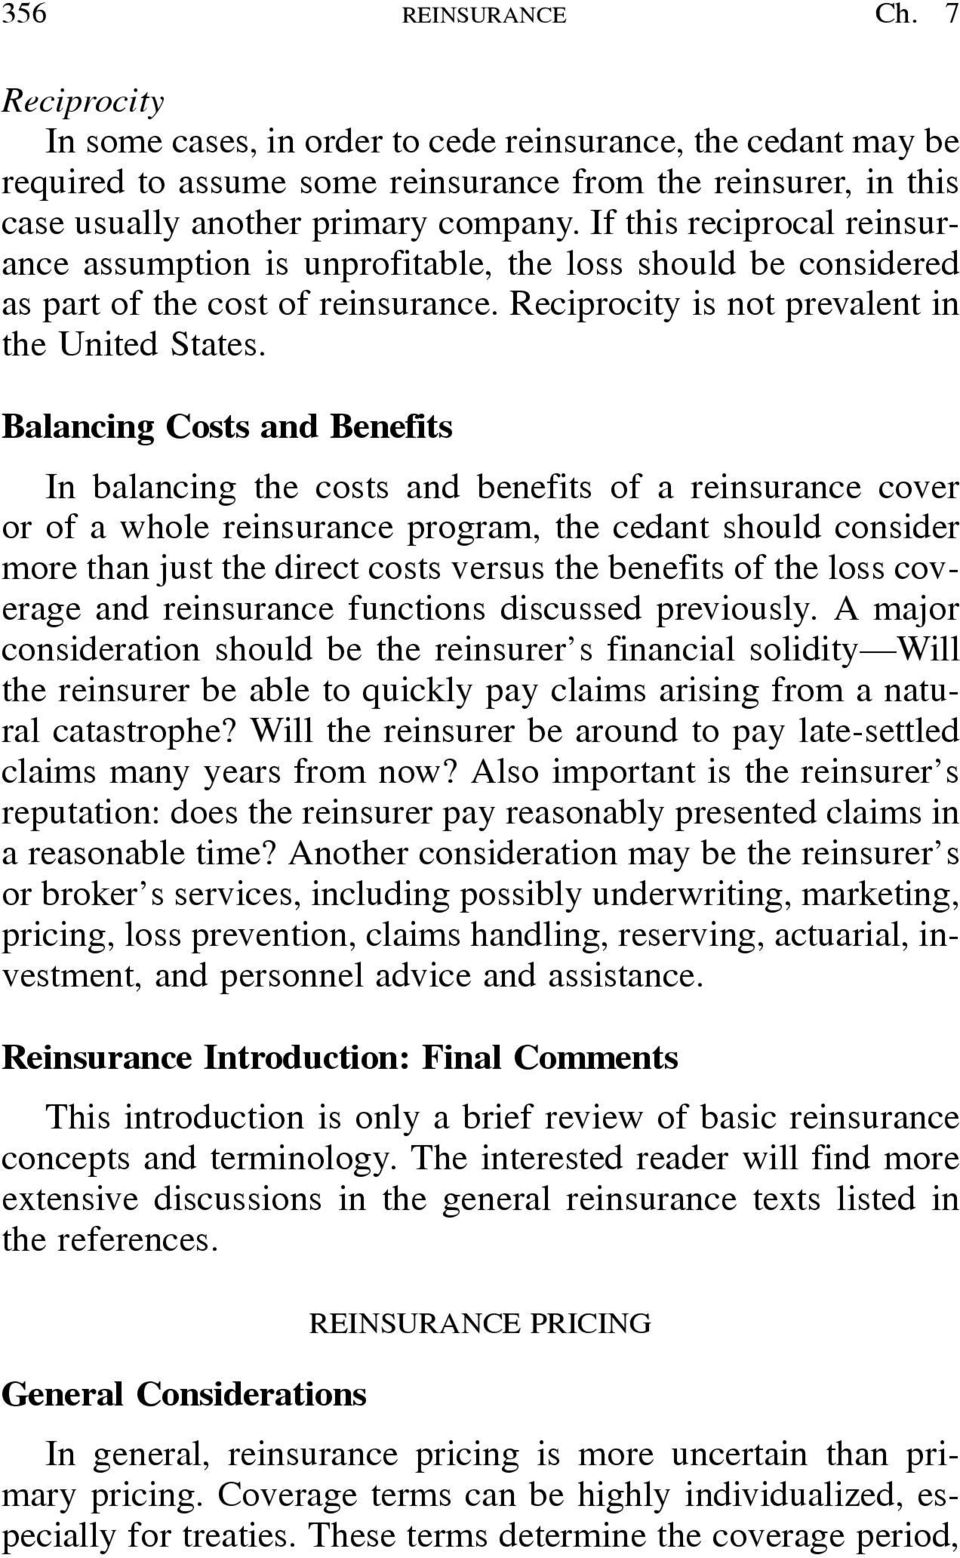 Balancing Costs and Benefits In balancing the costs and benefits of a reinsurance cover or of a whole reinsurance program, the cedant should consider more than just the direct costs versus the